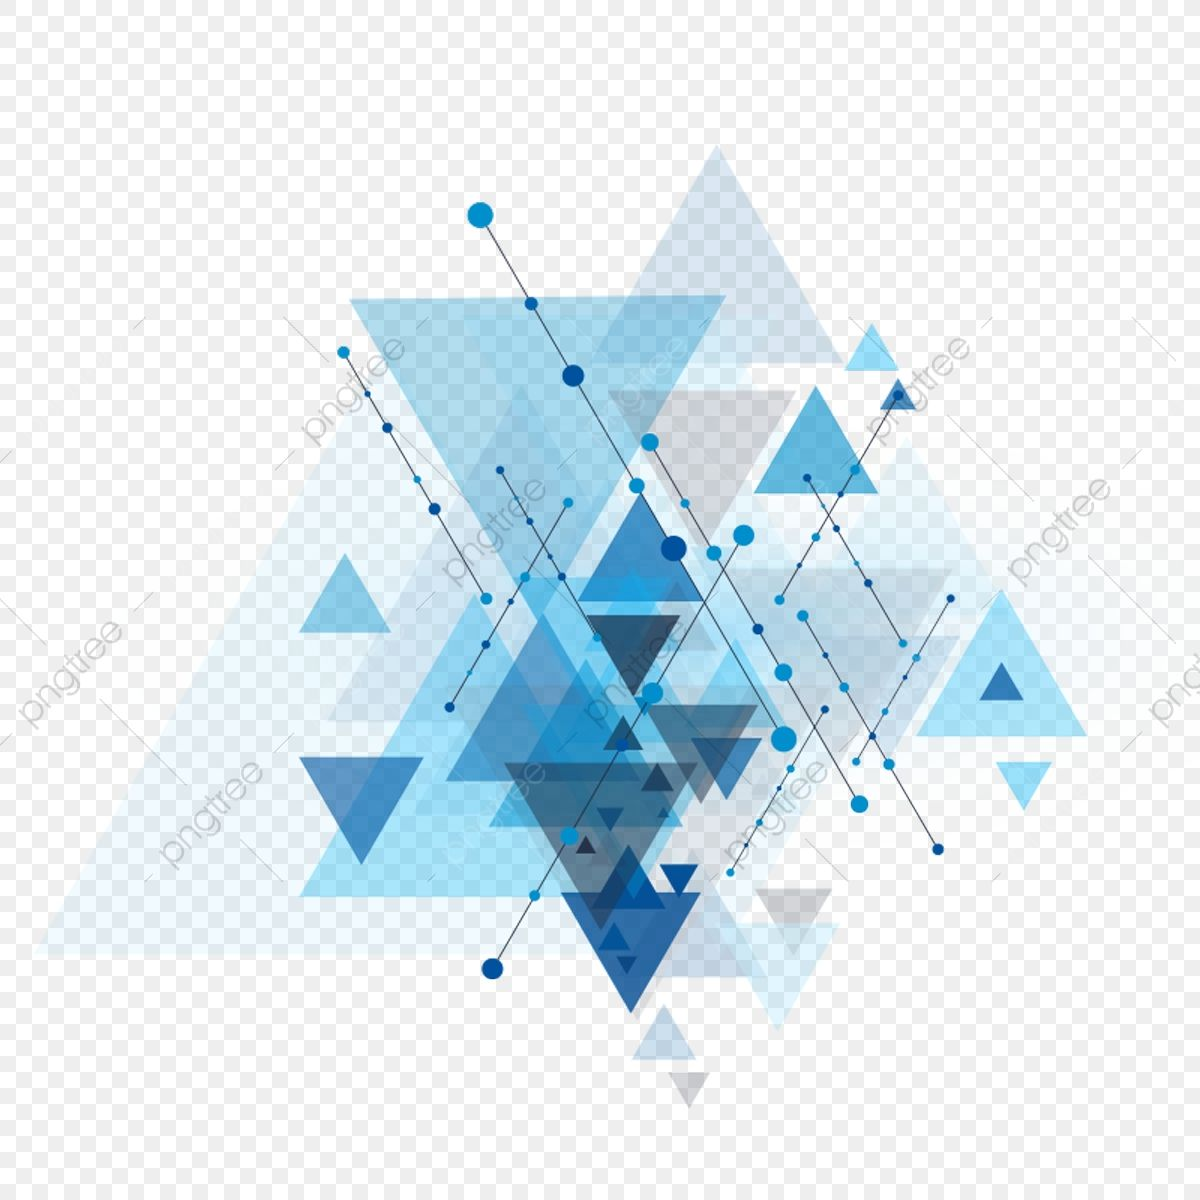 Blue Geometric Shape With Dot Line Background Light Abstract Png Transparent Clipart Image And Psd File For Free Download Geometric Background 3d Geometric Shapes Geometric Shapes